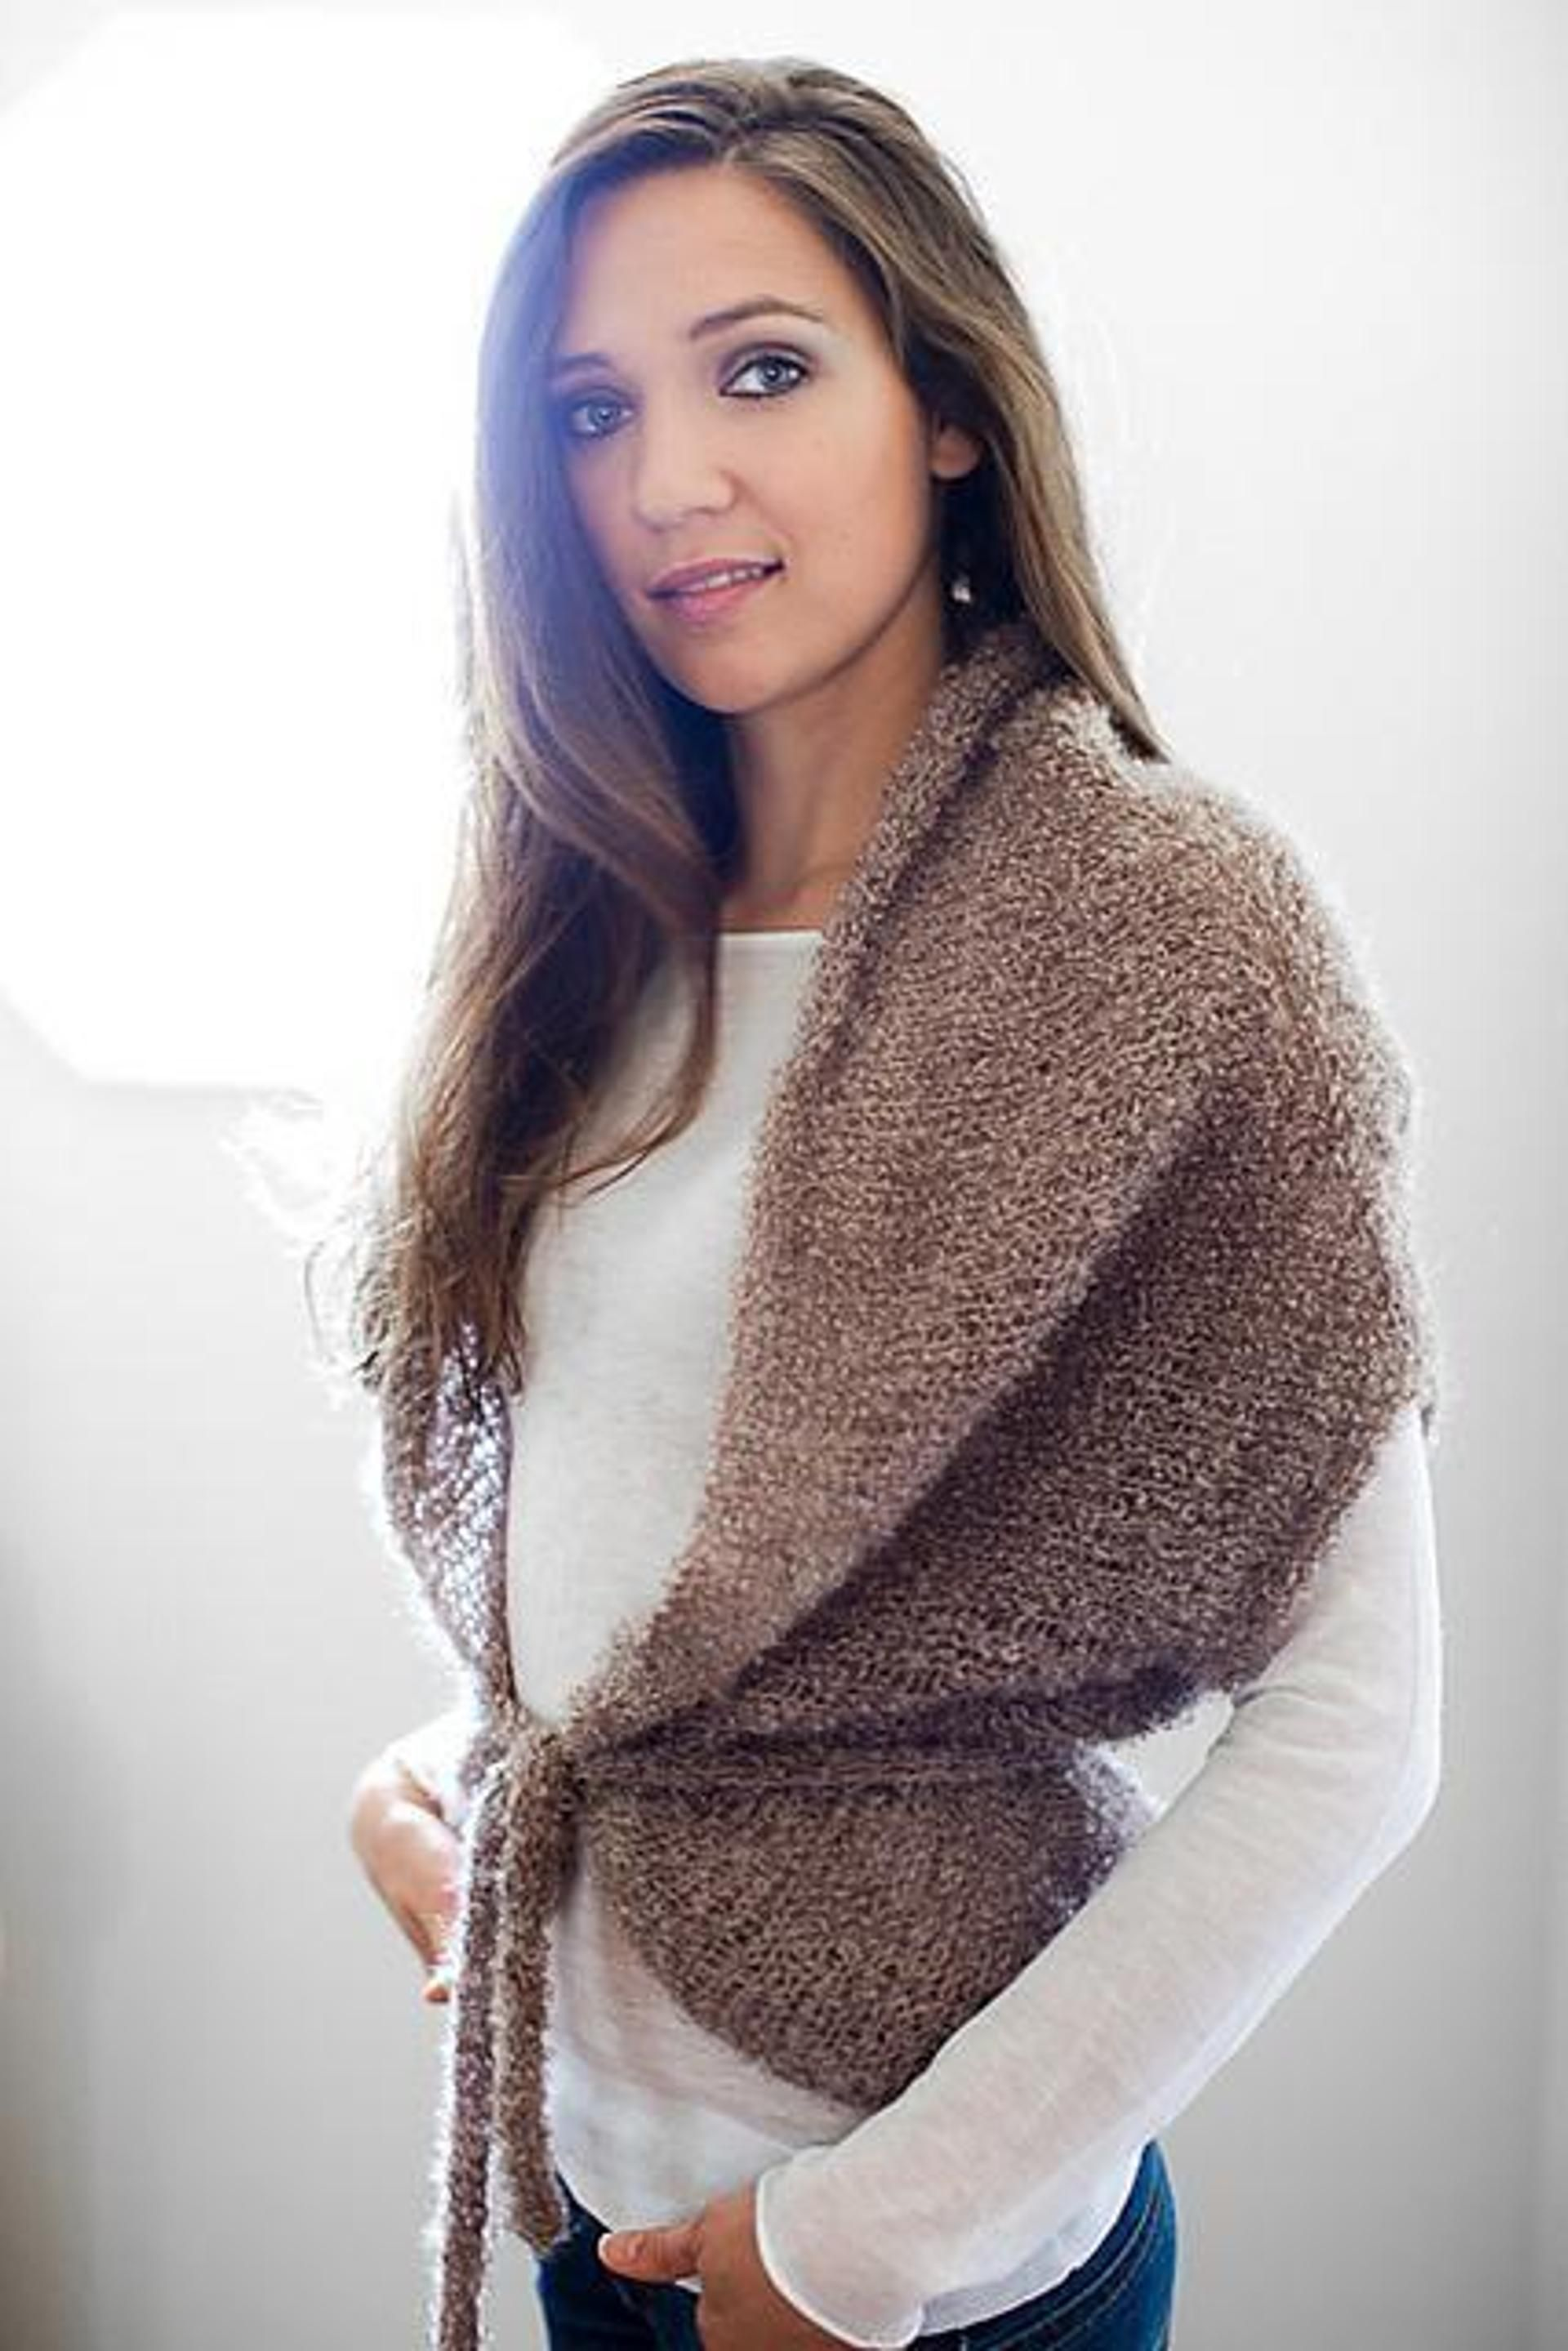 Boucle Cocoon (With images)   Shrug knitting pattern, Free ...